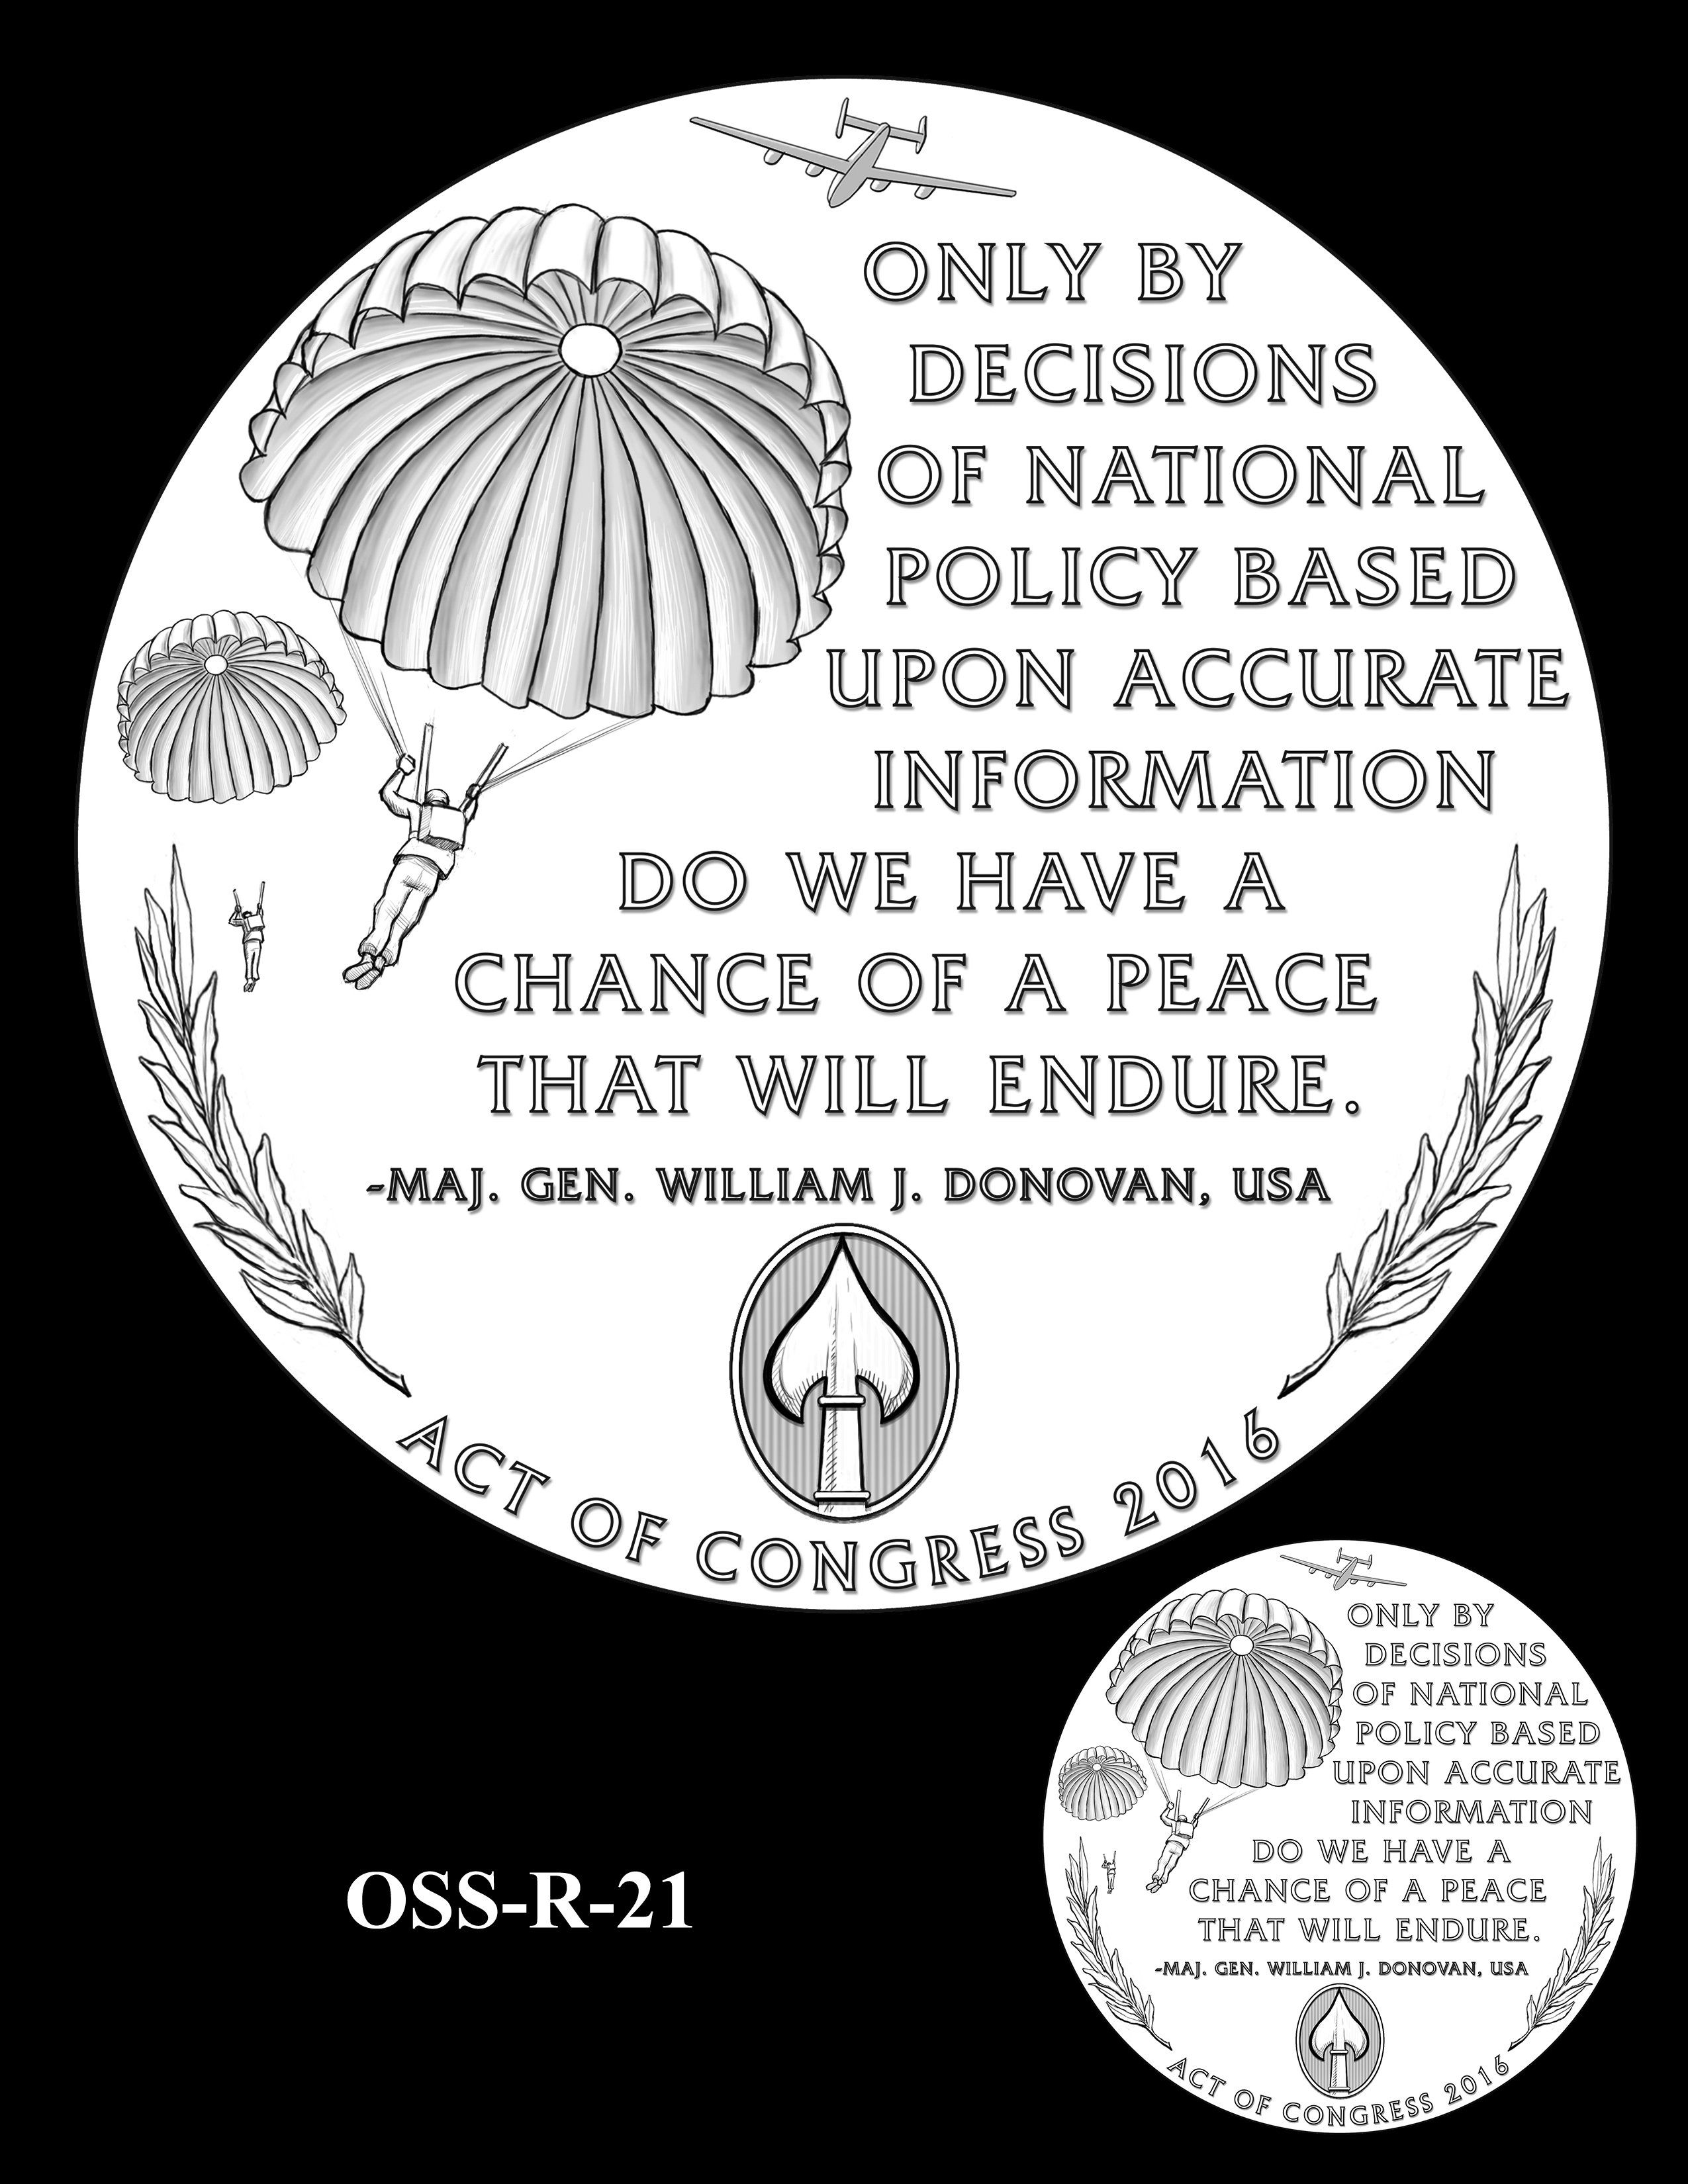 OSS-R-21 -- Office of Strategic Services Congressional Gold Medal